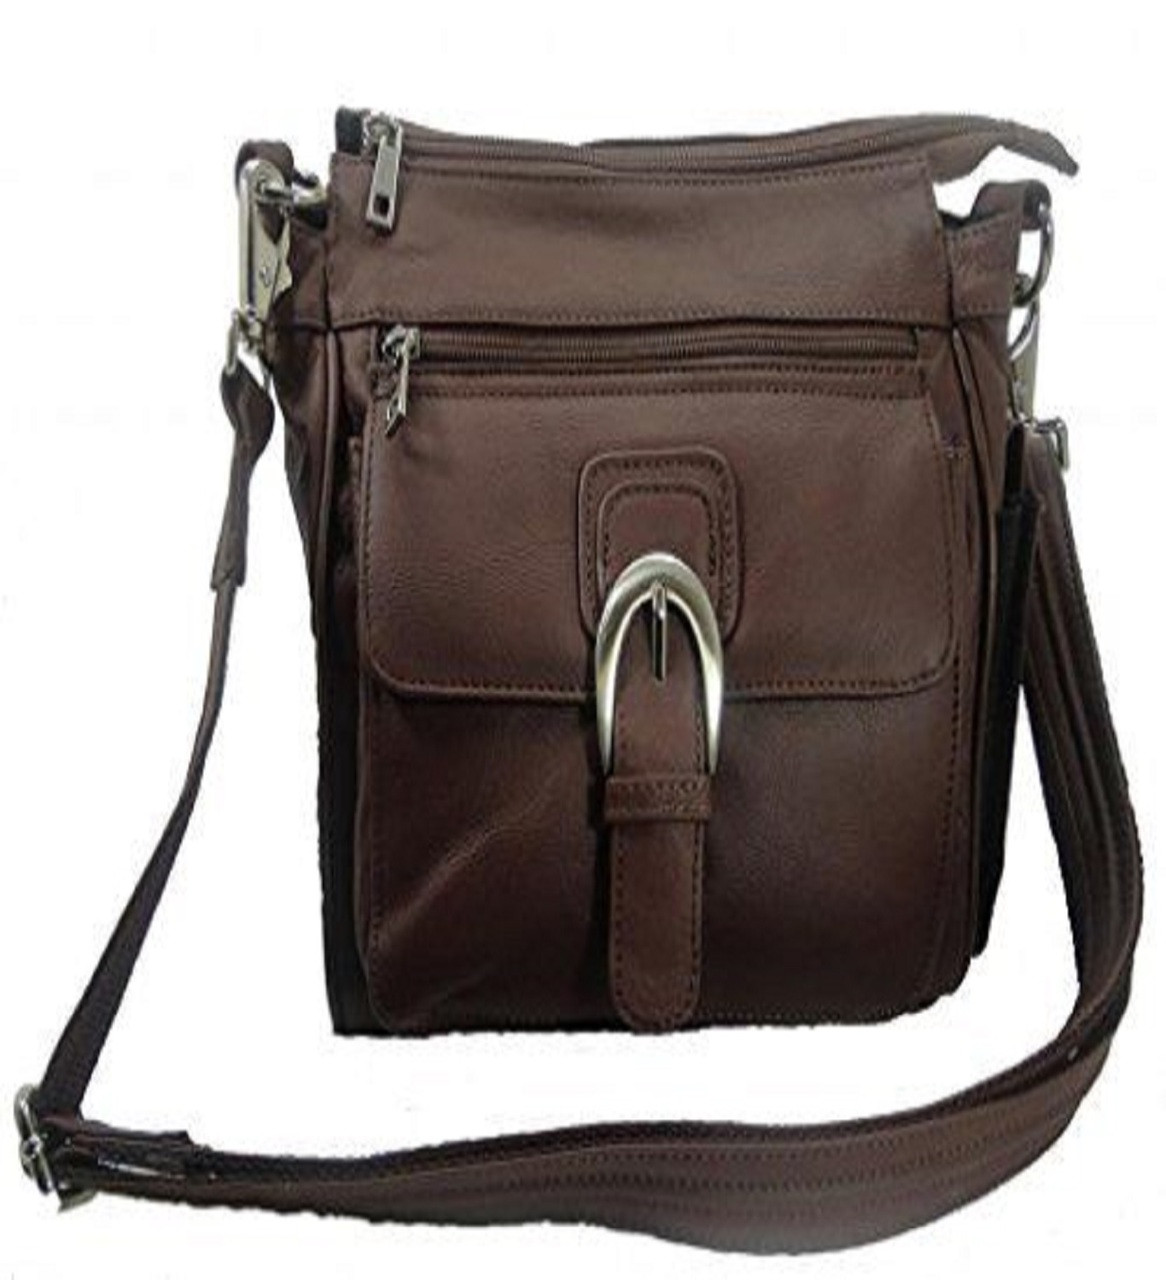 a154fc16eb Leather Concealed Carry Cross Body Gun Purse Left or Right Hand W ...